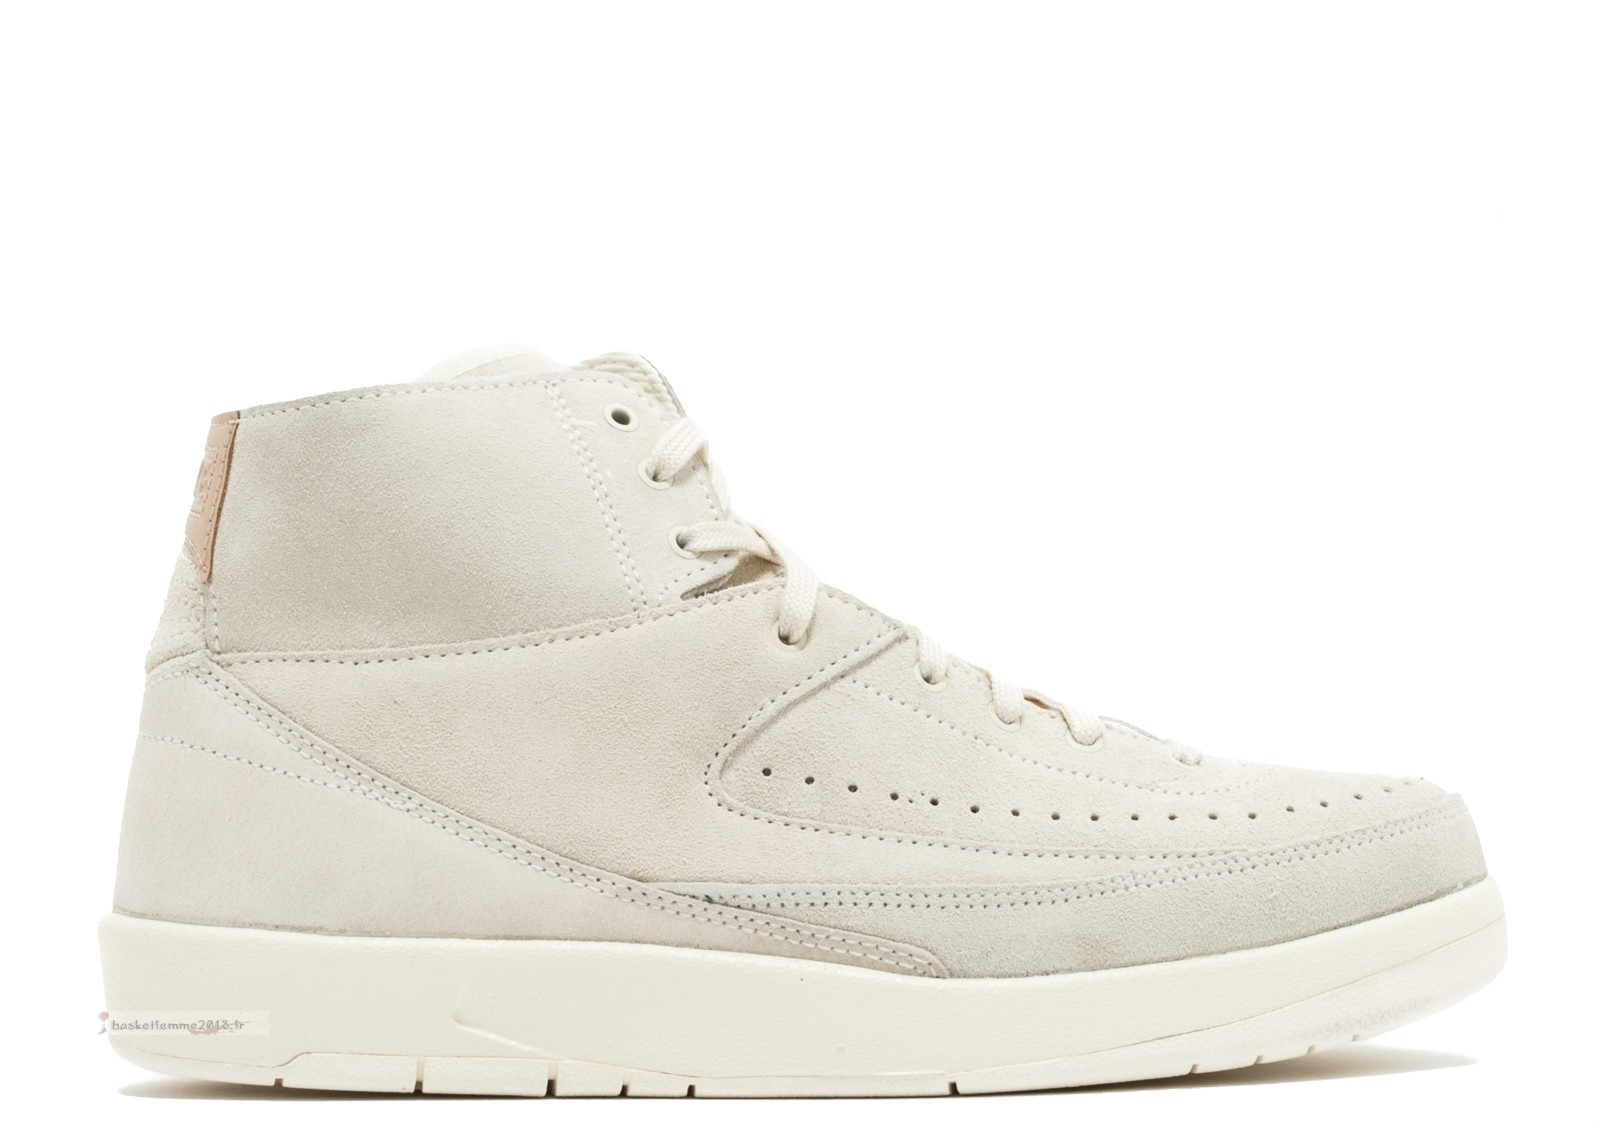 Air Jordan 2 Retro Decon Beige (897521-100) Chaussure de Basket